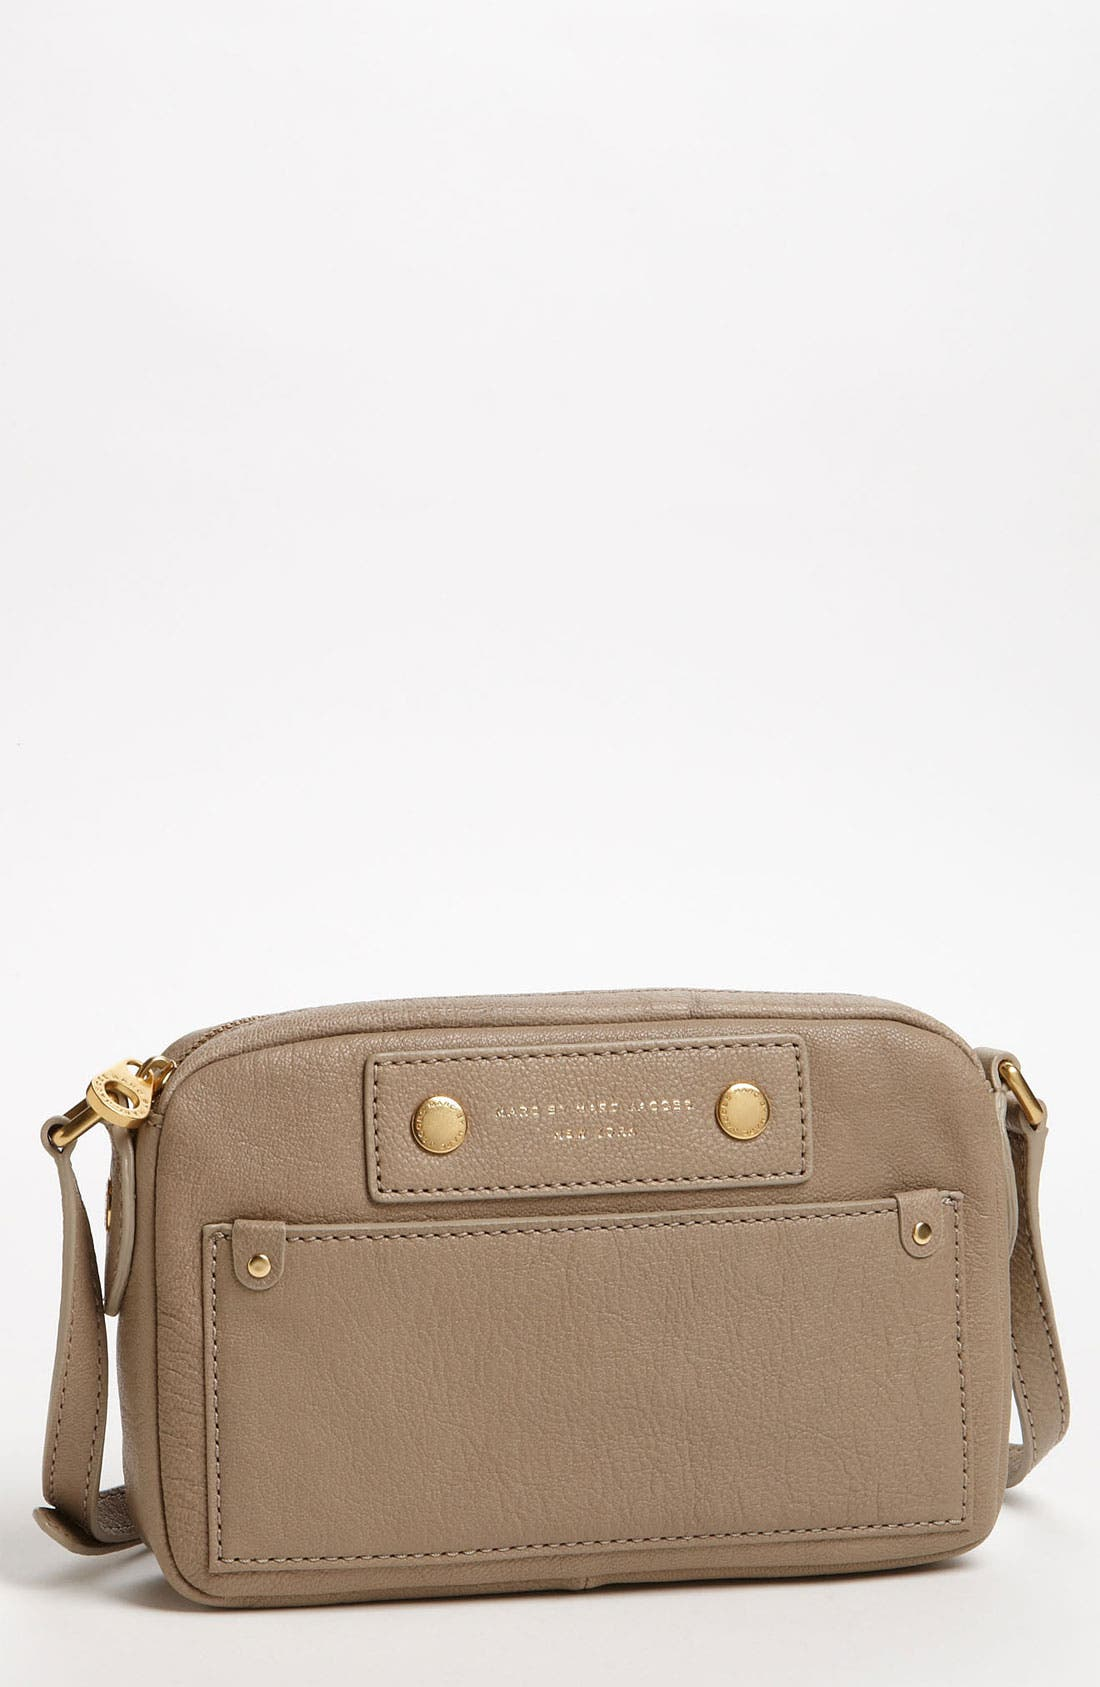 Main Image - MARC BY MARC JACOBS 'Preppy - Camera' Leather Crossbody Bag